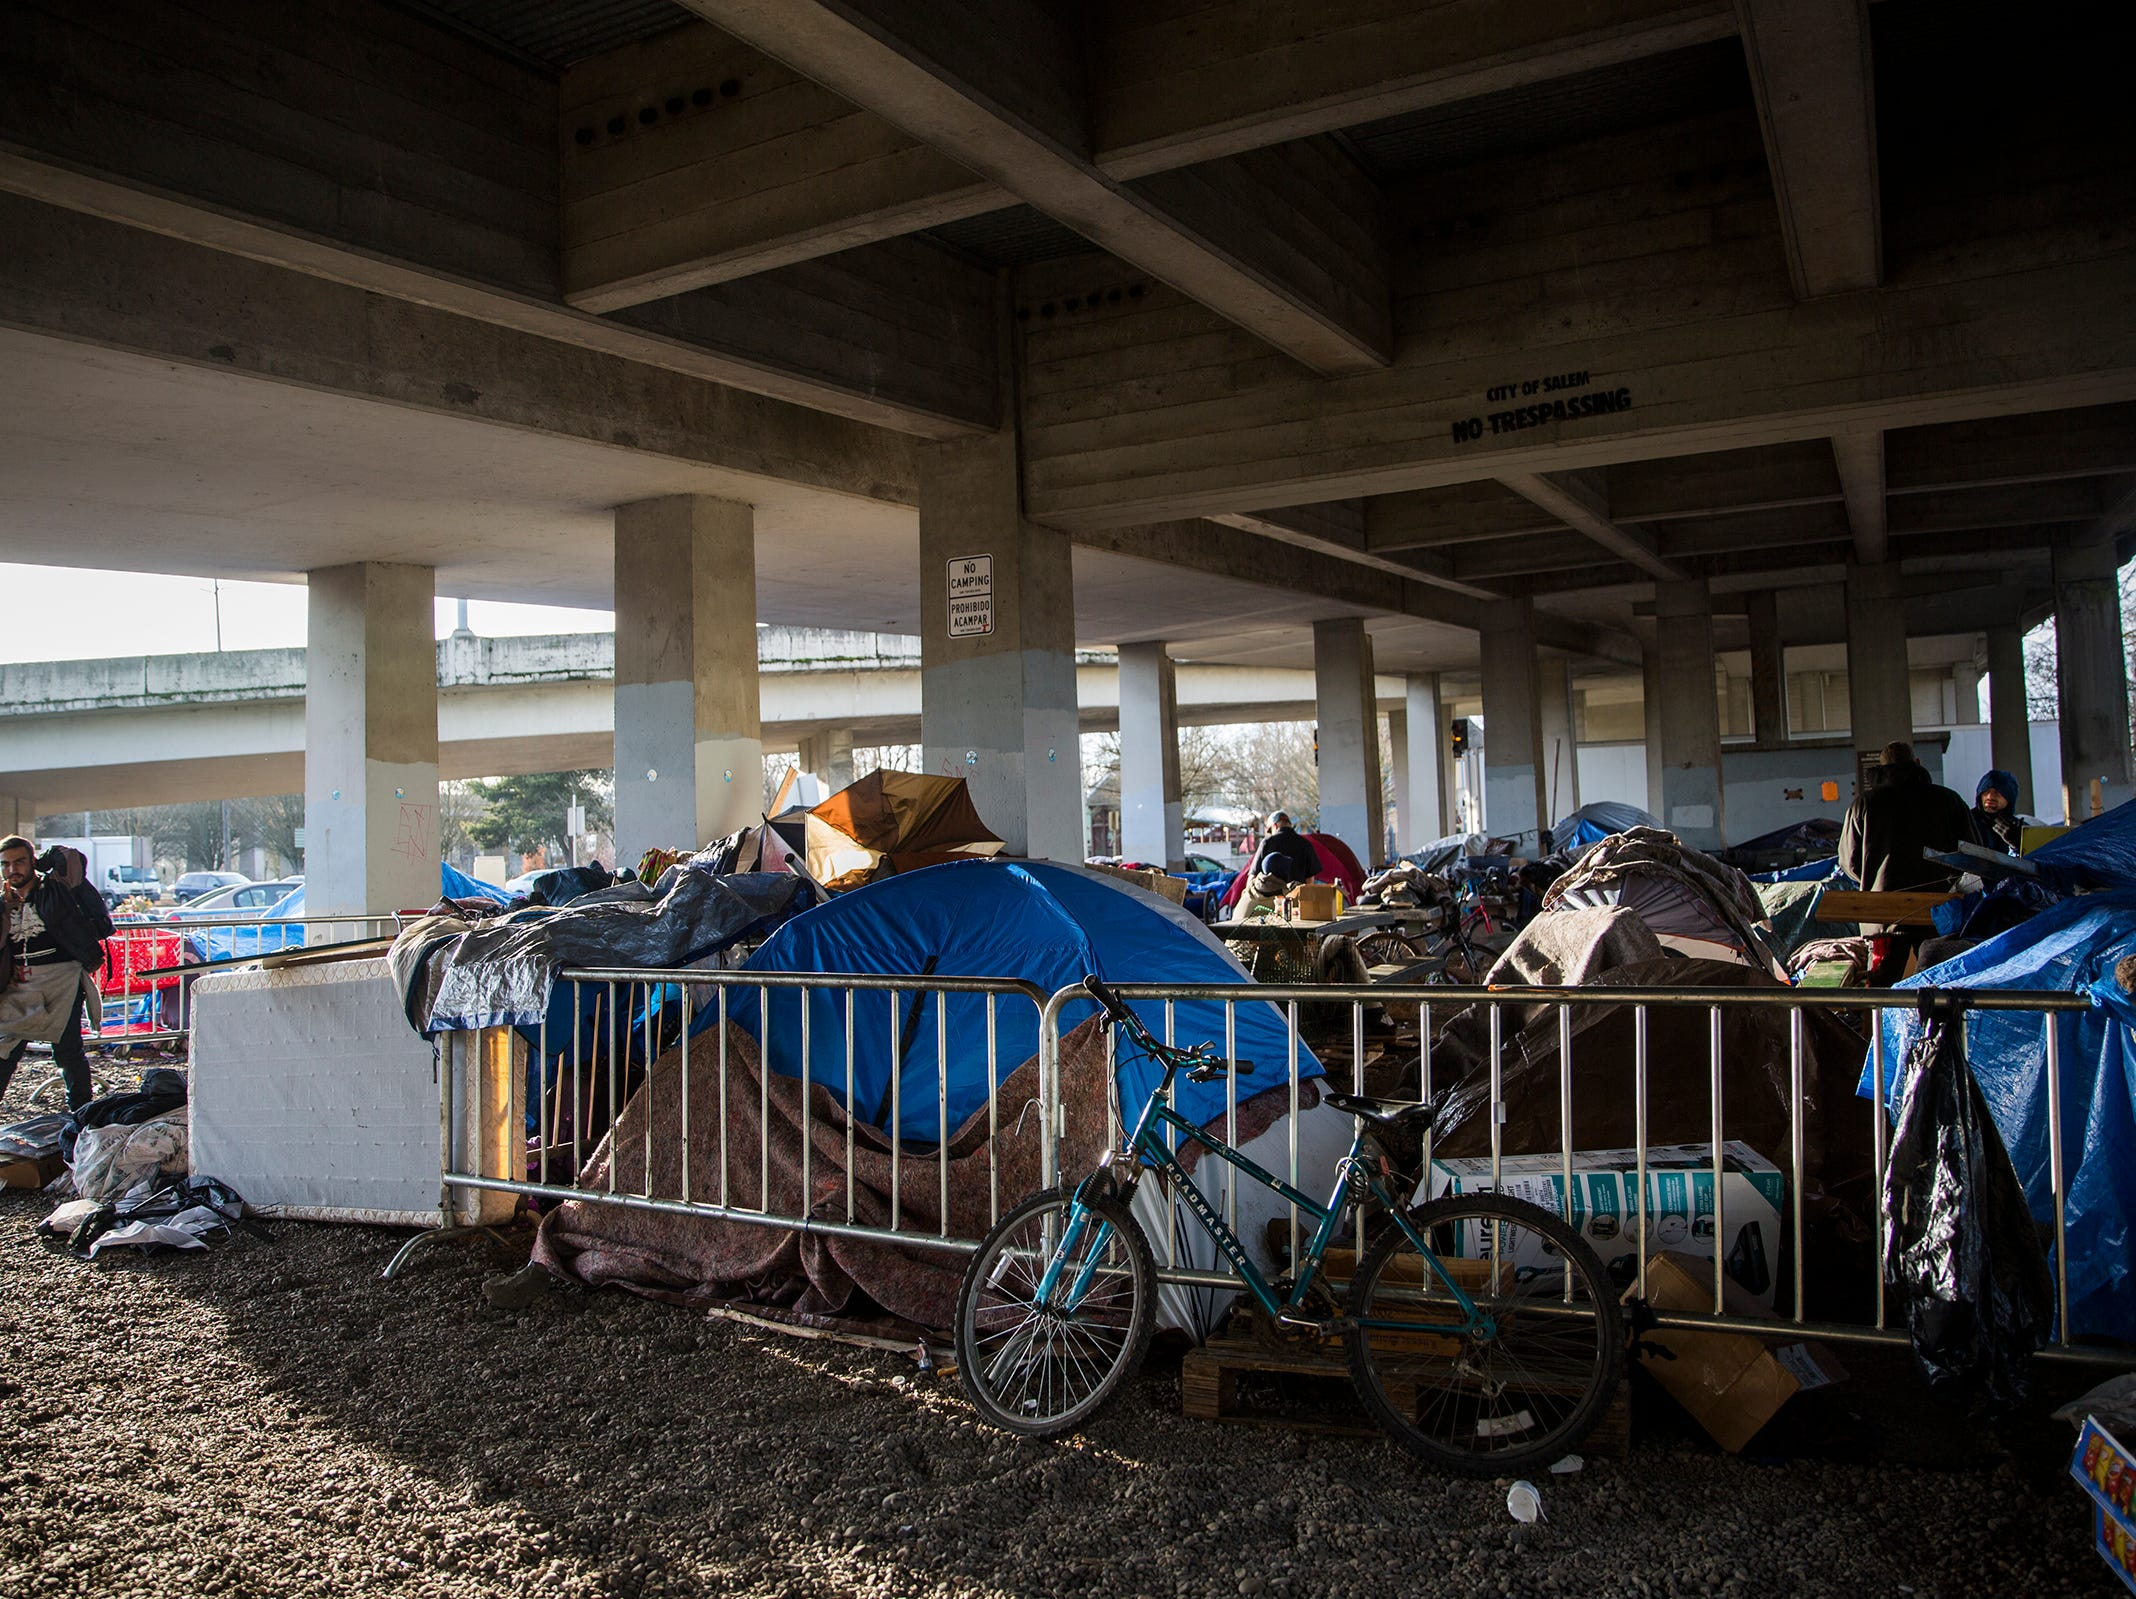 Tents and personal belongings crowd the edge of Marion Square Park under the Marion St. Bridge on Front St. NE in Salem on Thursday, Jan. 10, 2019. Around 15 people spend the night under the bridge each night.